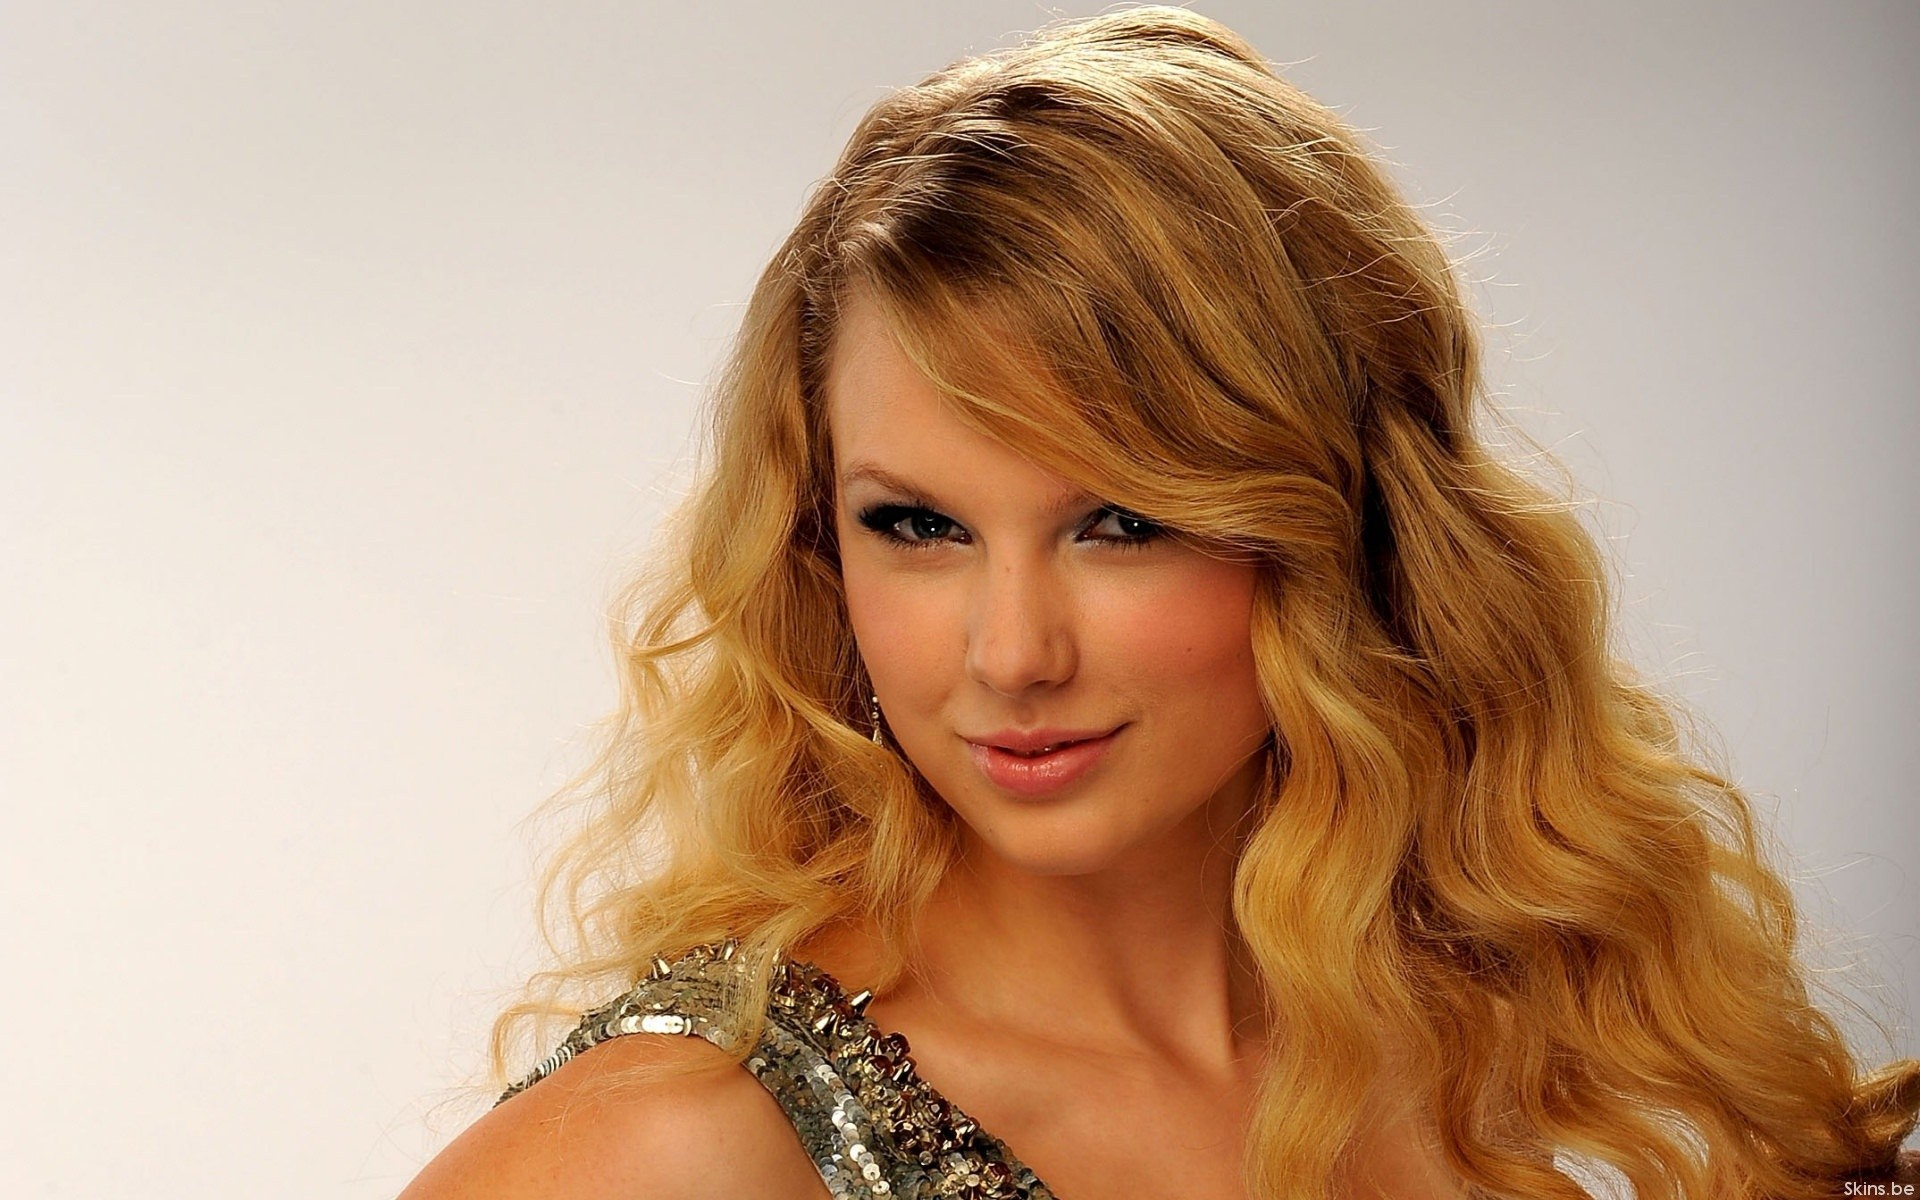 so heres 50 gorgeous Taylor Swift wallpapers to adorn your desktop 1920x1200